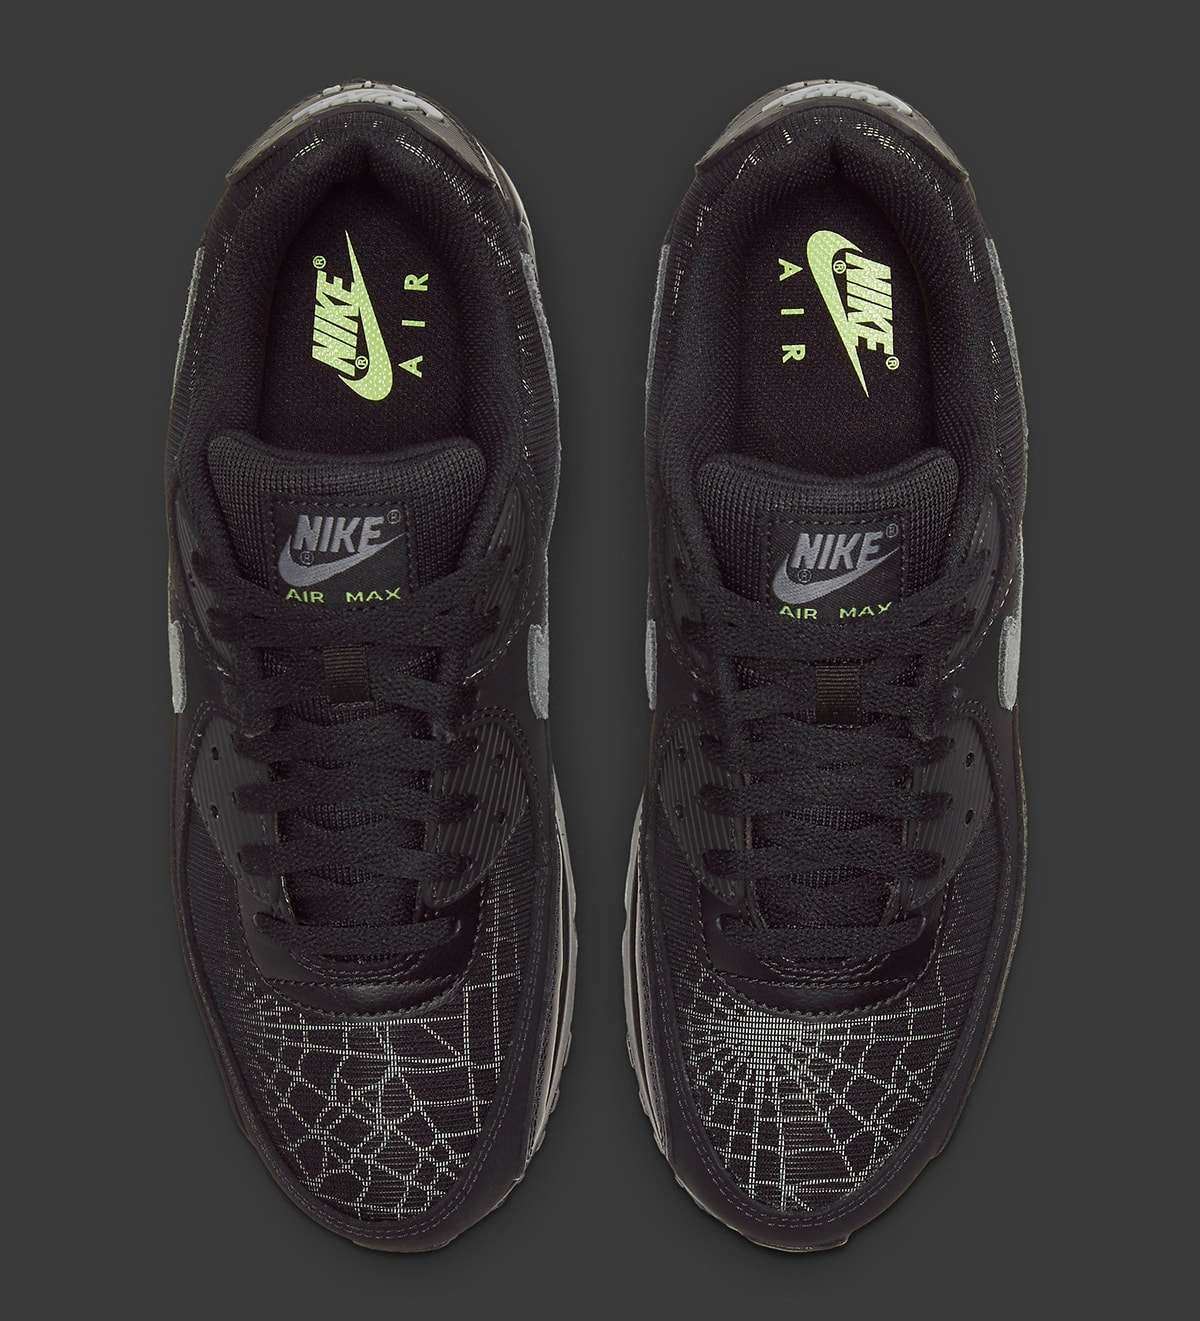 """Nike Air Max 90 """"Spider Web"""" Releases on Halloween 